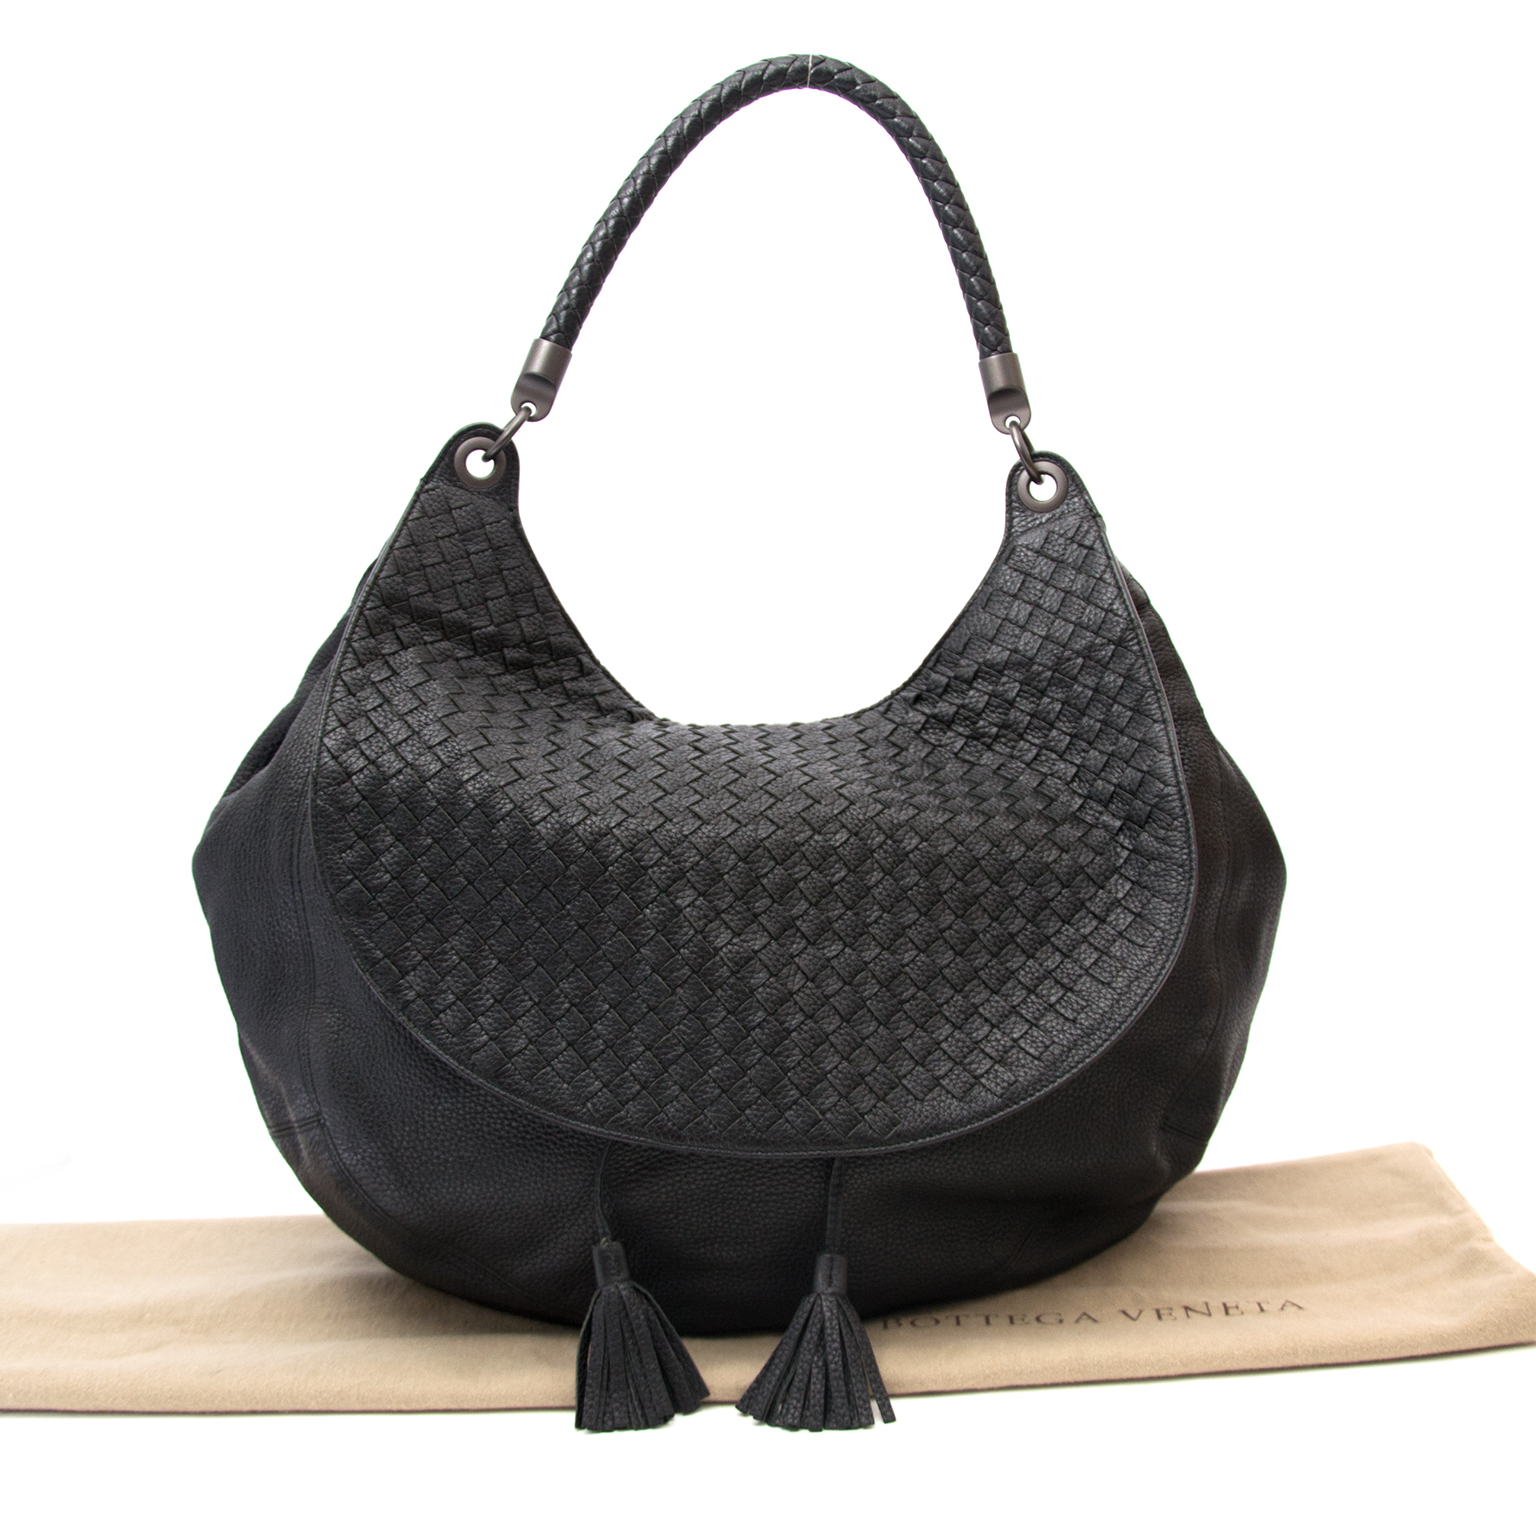 We buy and sell your secondhand designer handbags and accessories for the best price of 2017